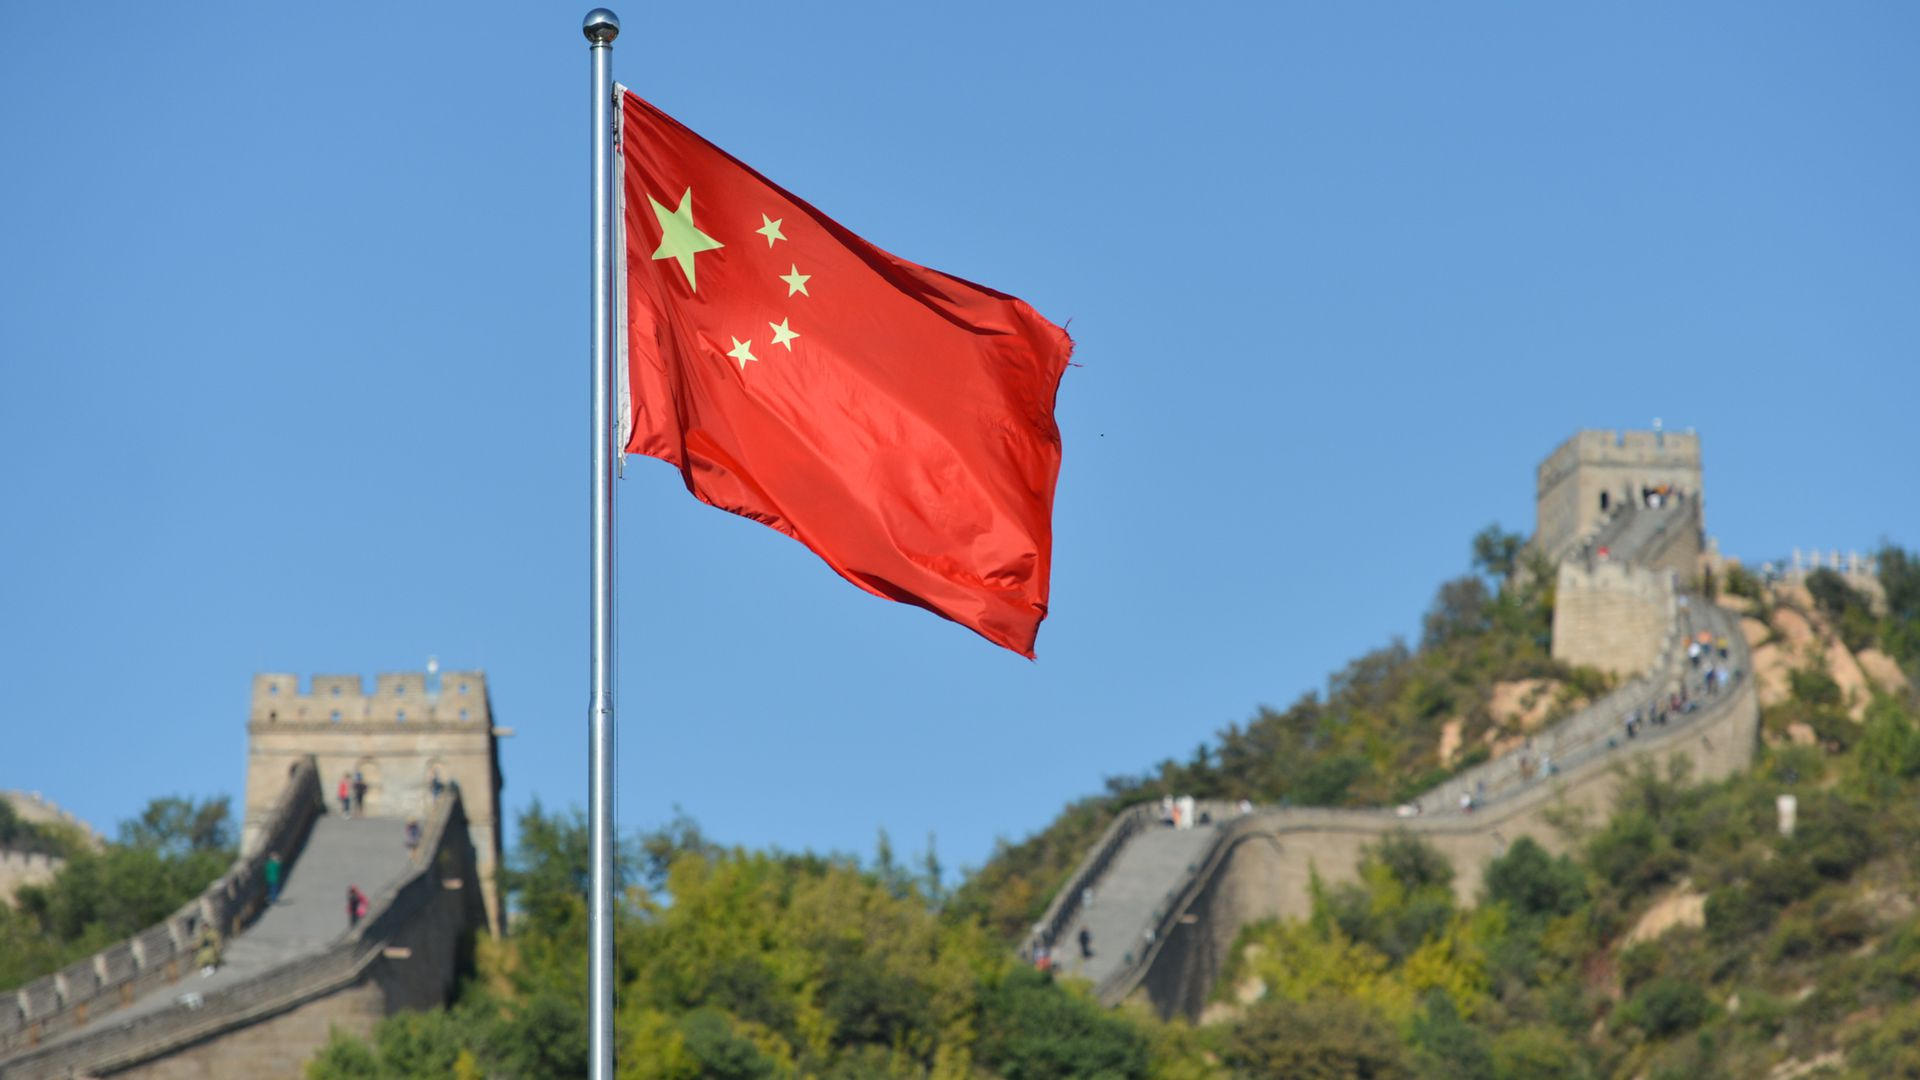 The Chinese National Flag is photographed in front of Badaling, the most visited section of the Great Wall of China